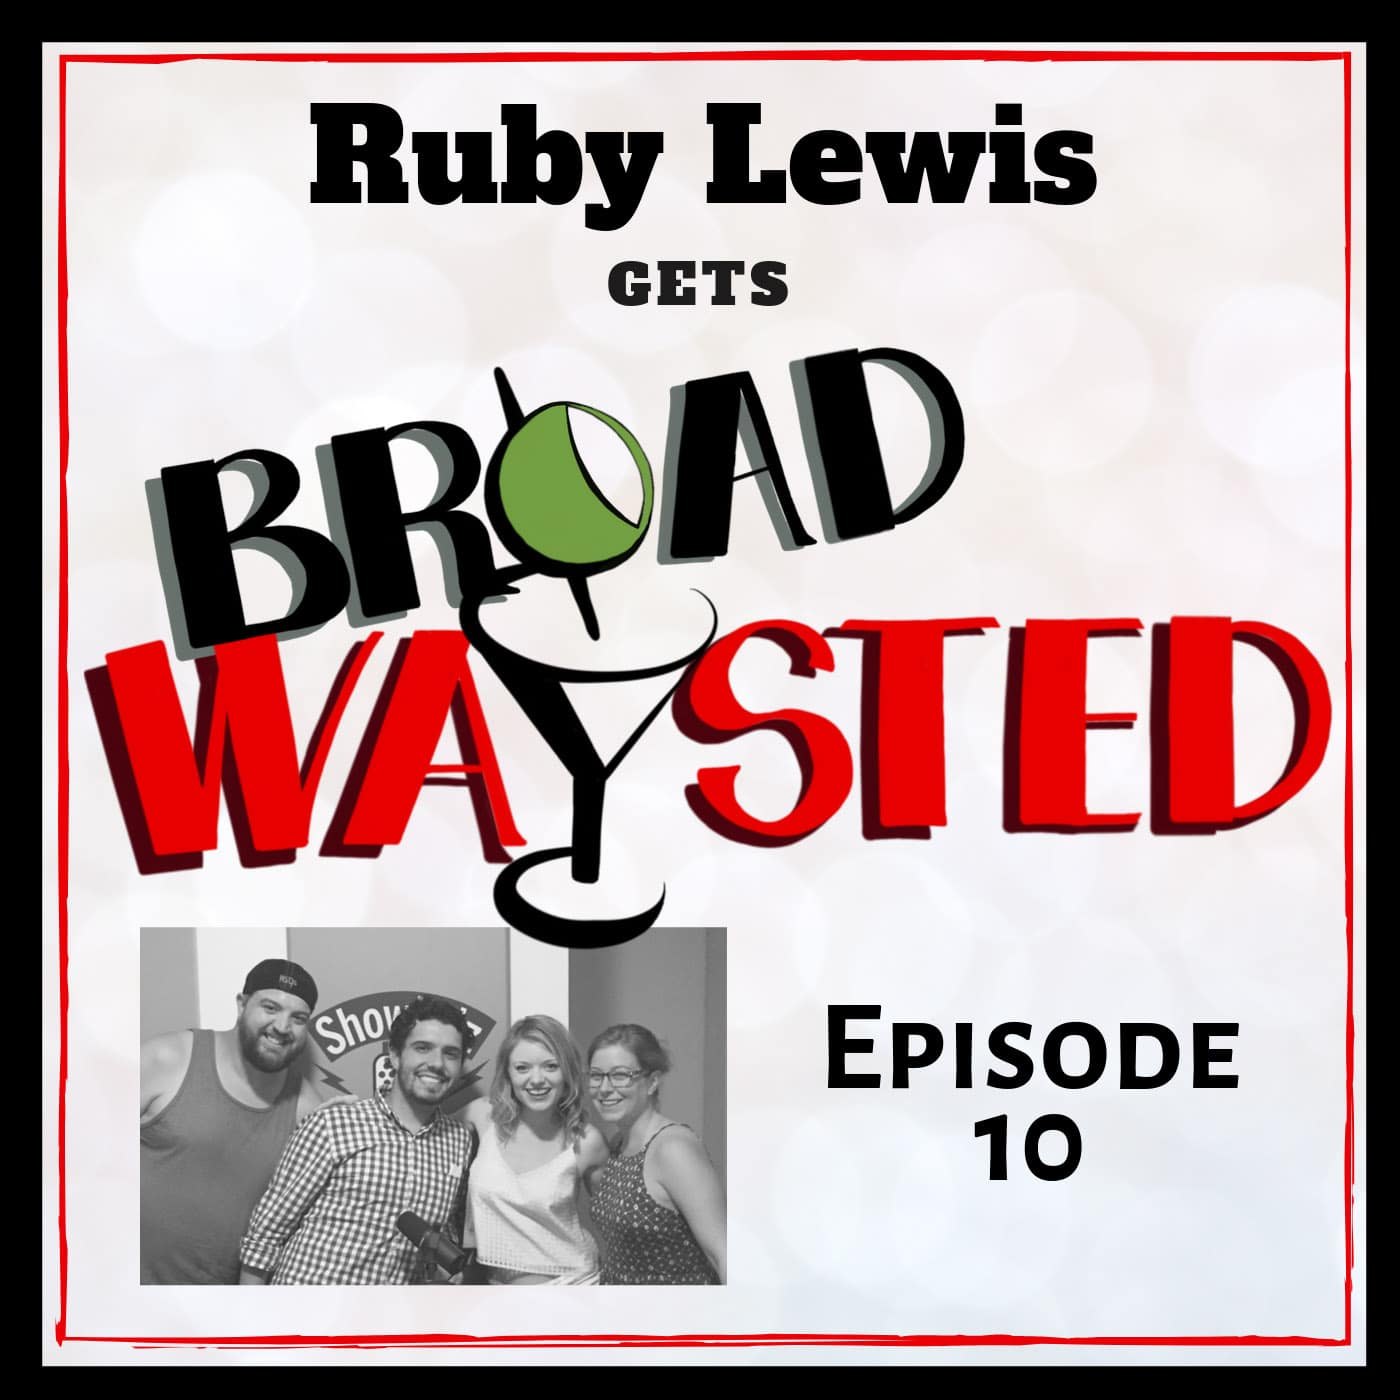 Broadwaysted Ep 10 Ruby Lewis